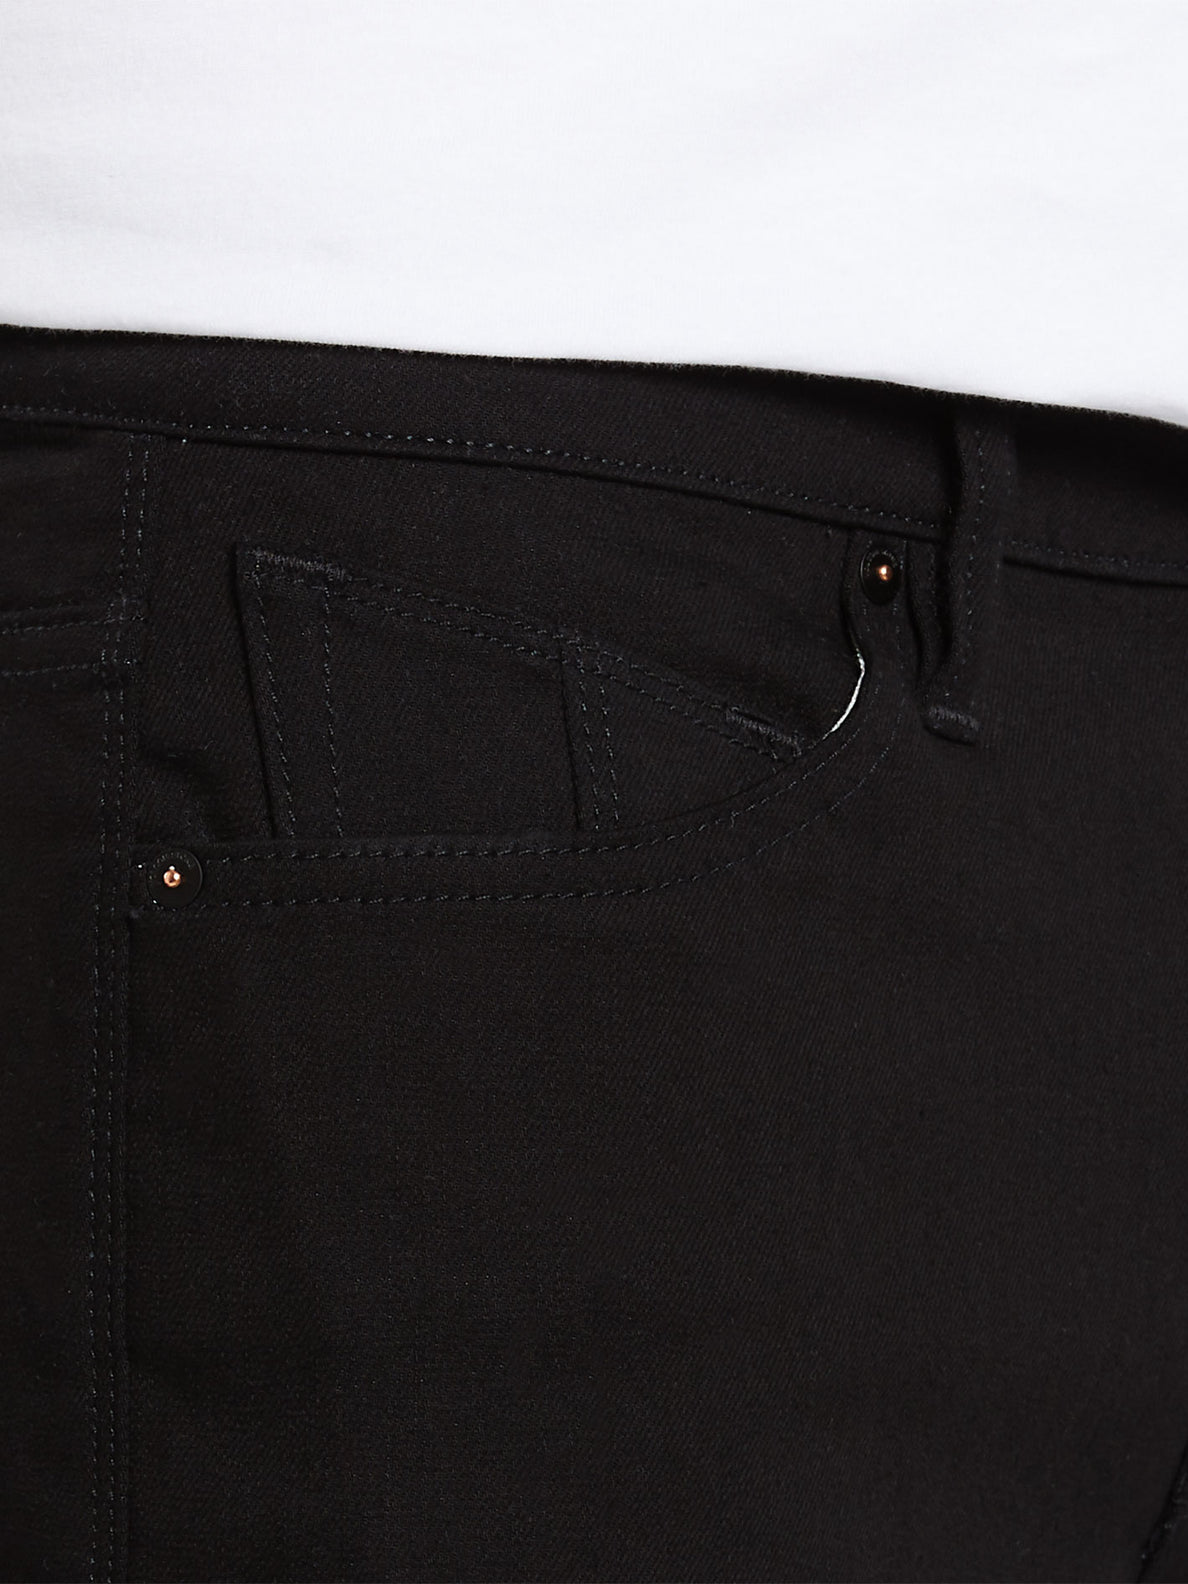 Solver Modern Fit Jeans - Black On Black (A1931503_BKB) [5]